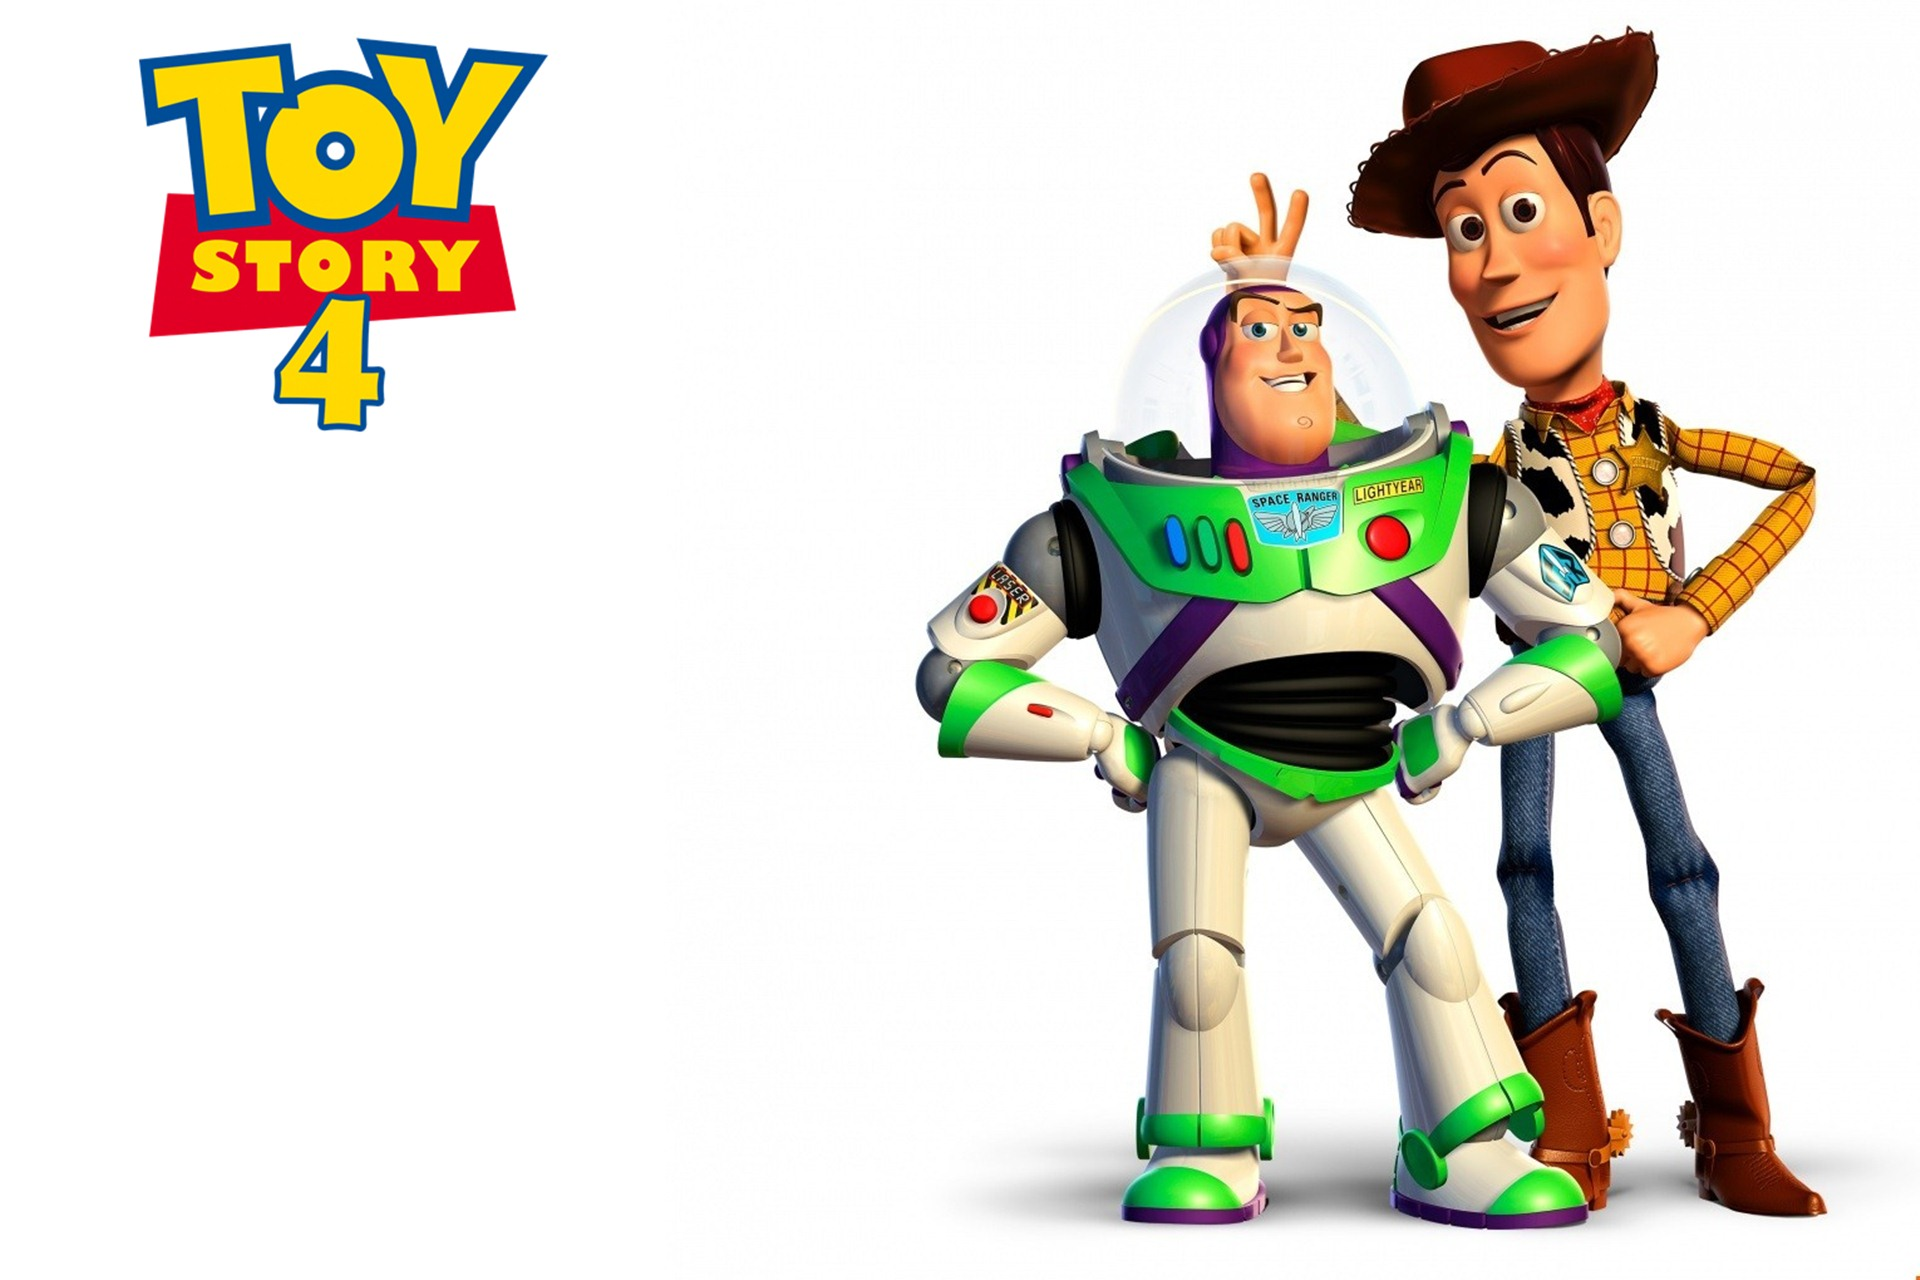 Wallpaper toy story clipart banner black and white stock Toy Story 4 HD wallpapers free download banner black and white stock